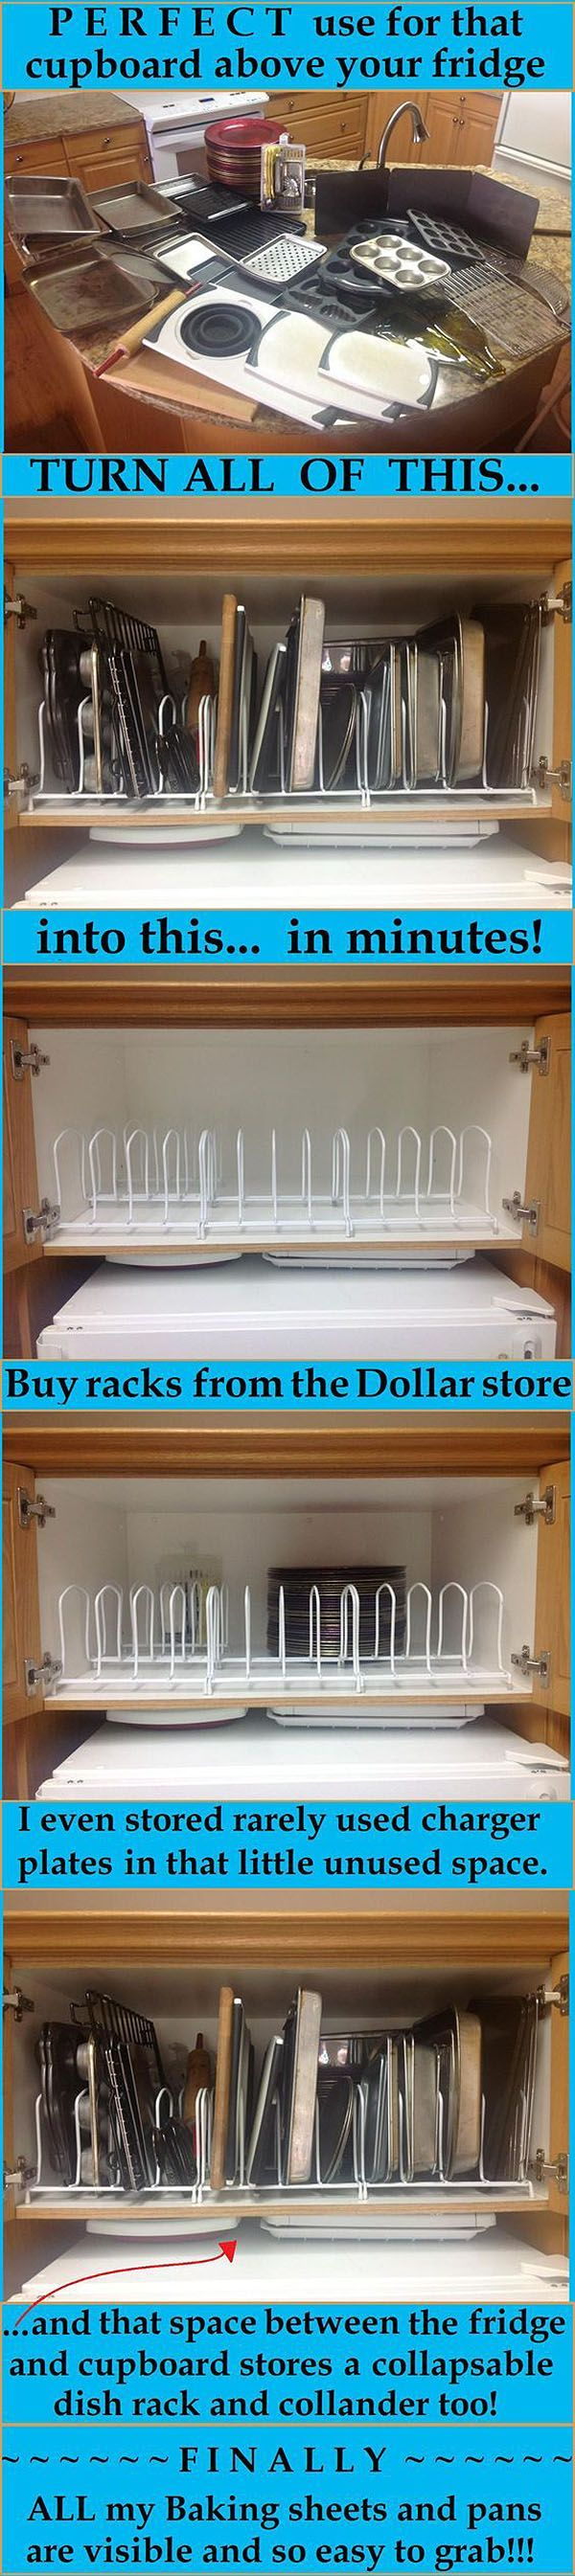 Vertical Cabinet Shelves Above the Refrigerator